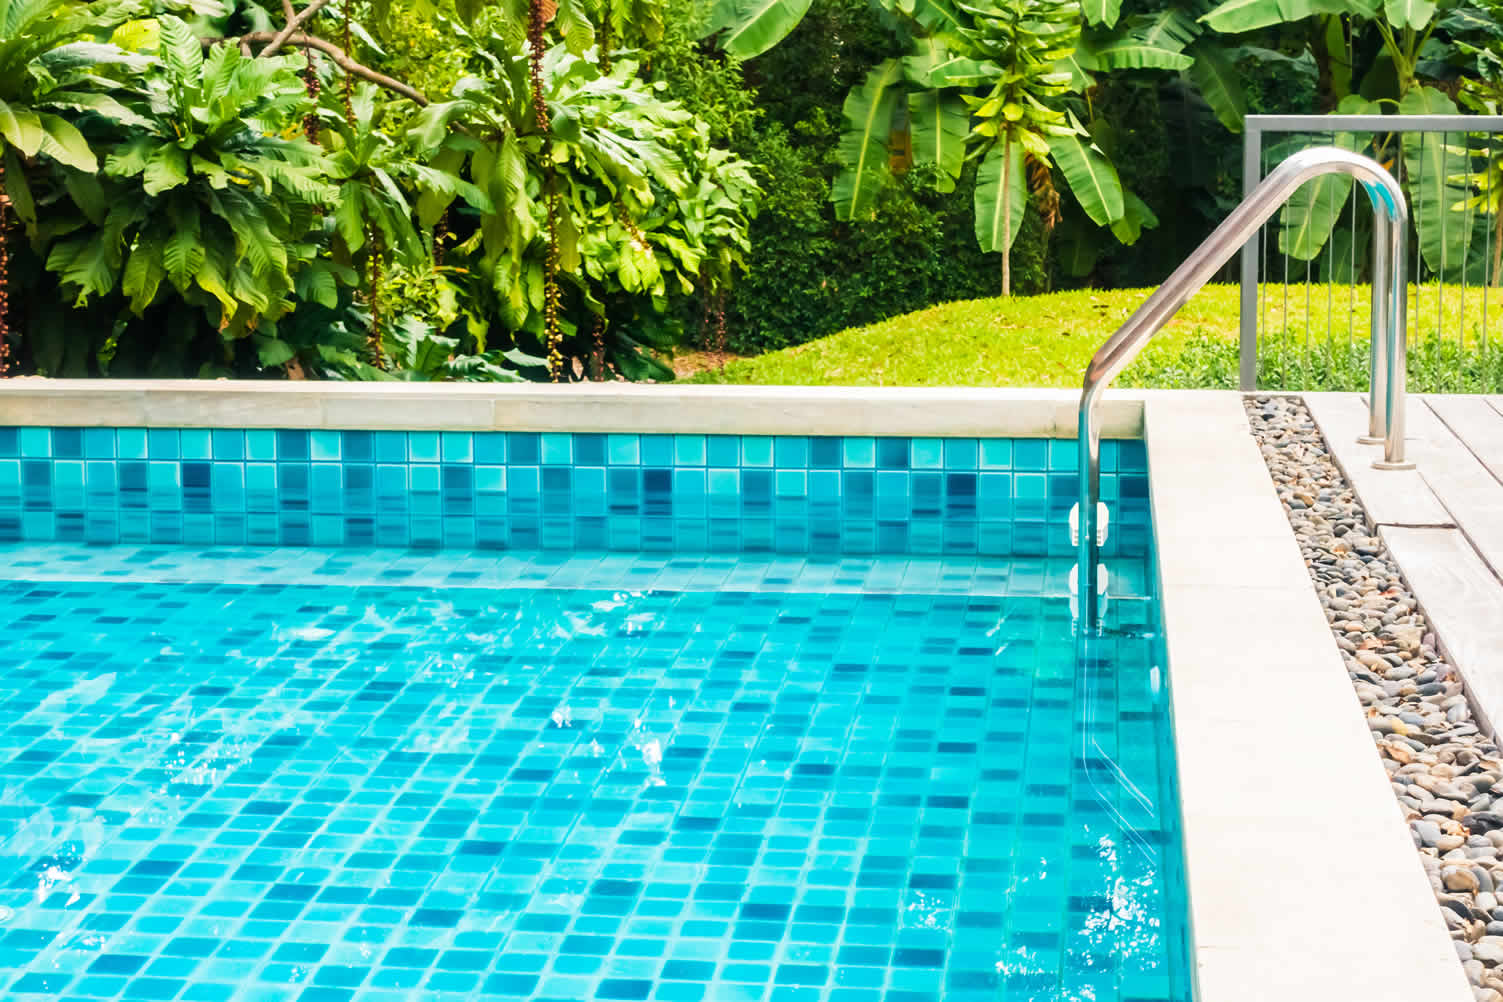 before installing swimming pool